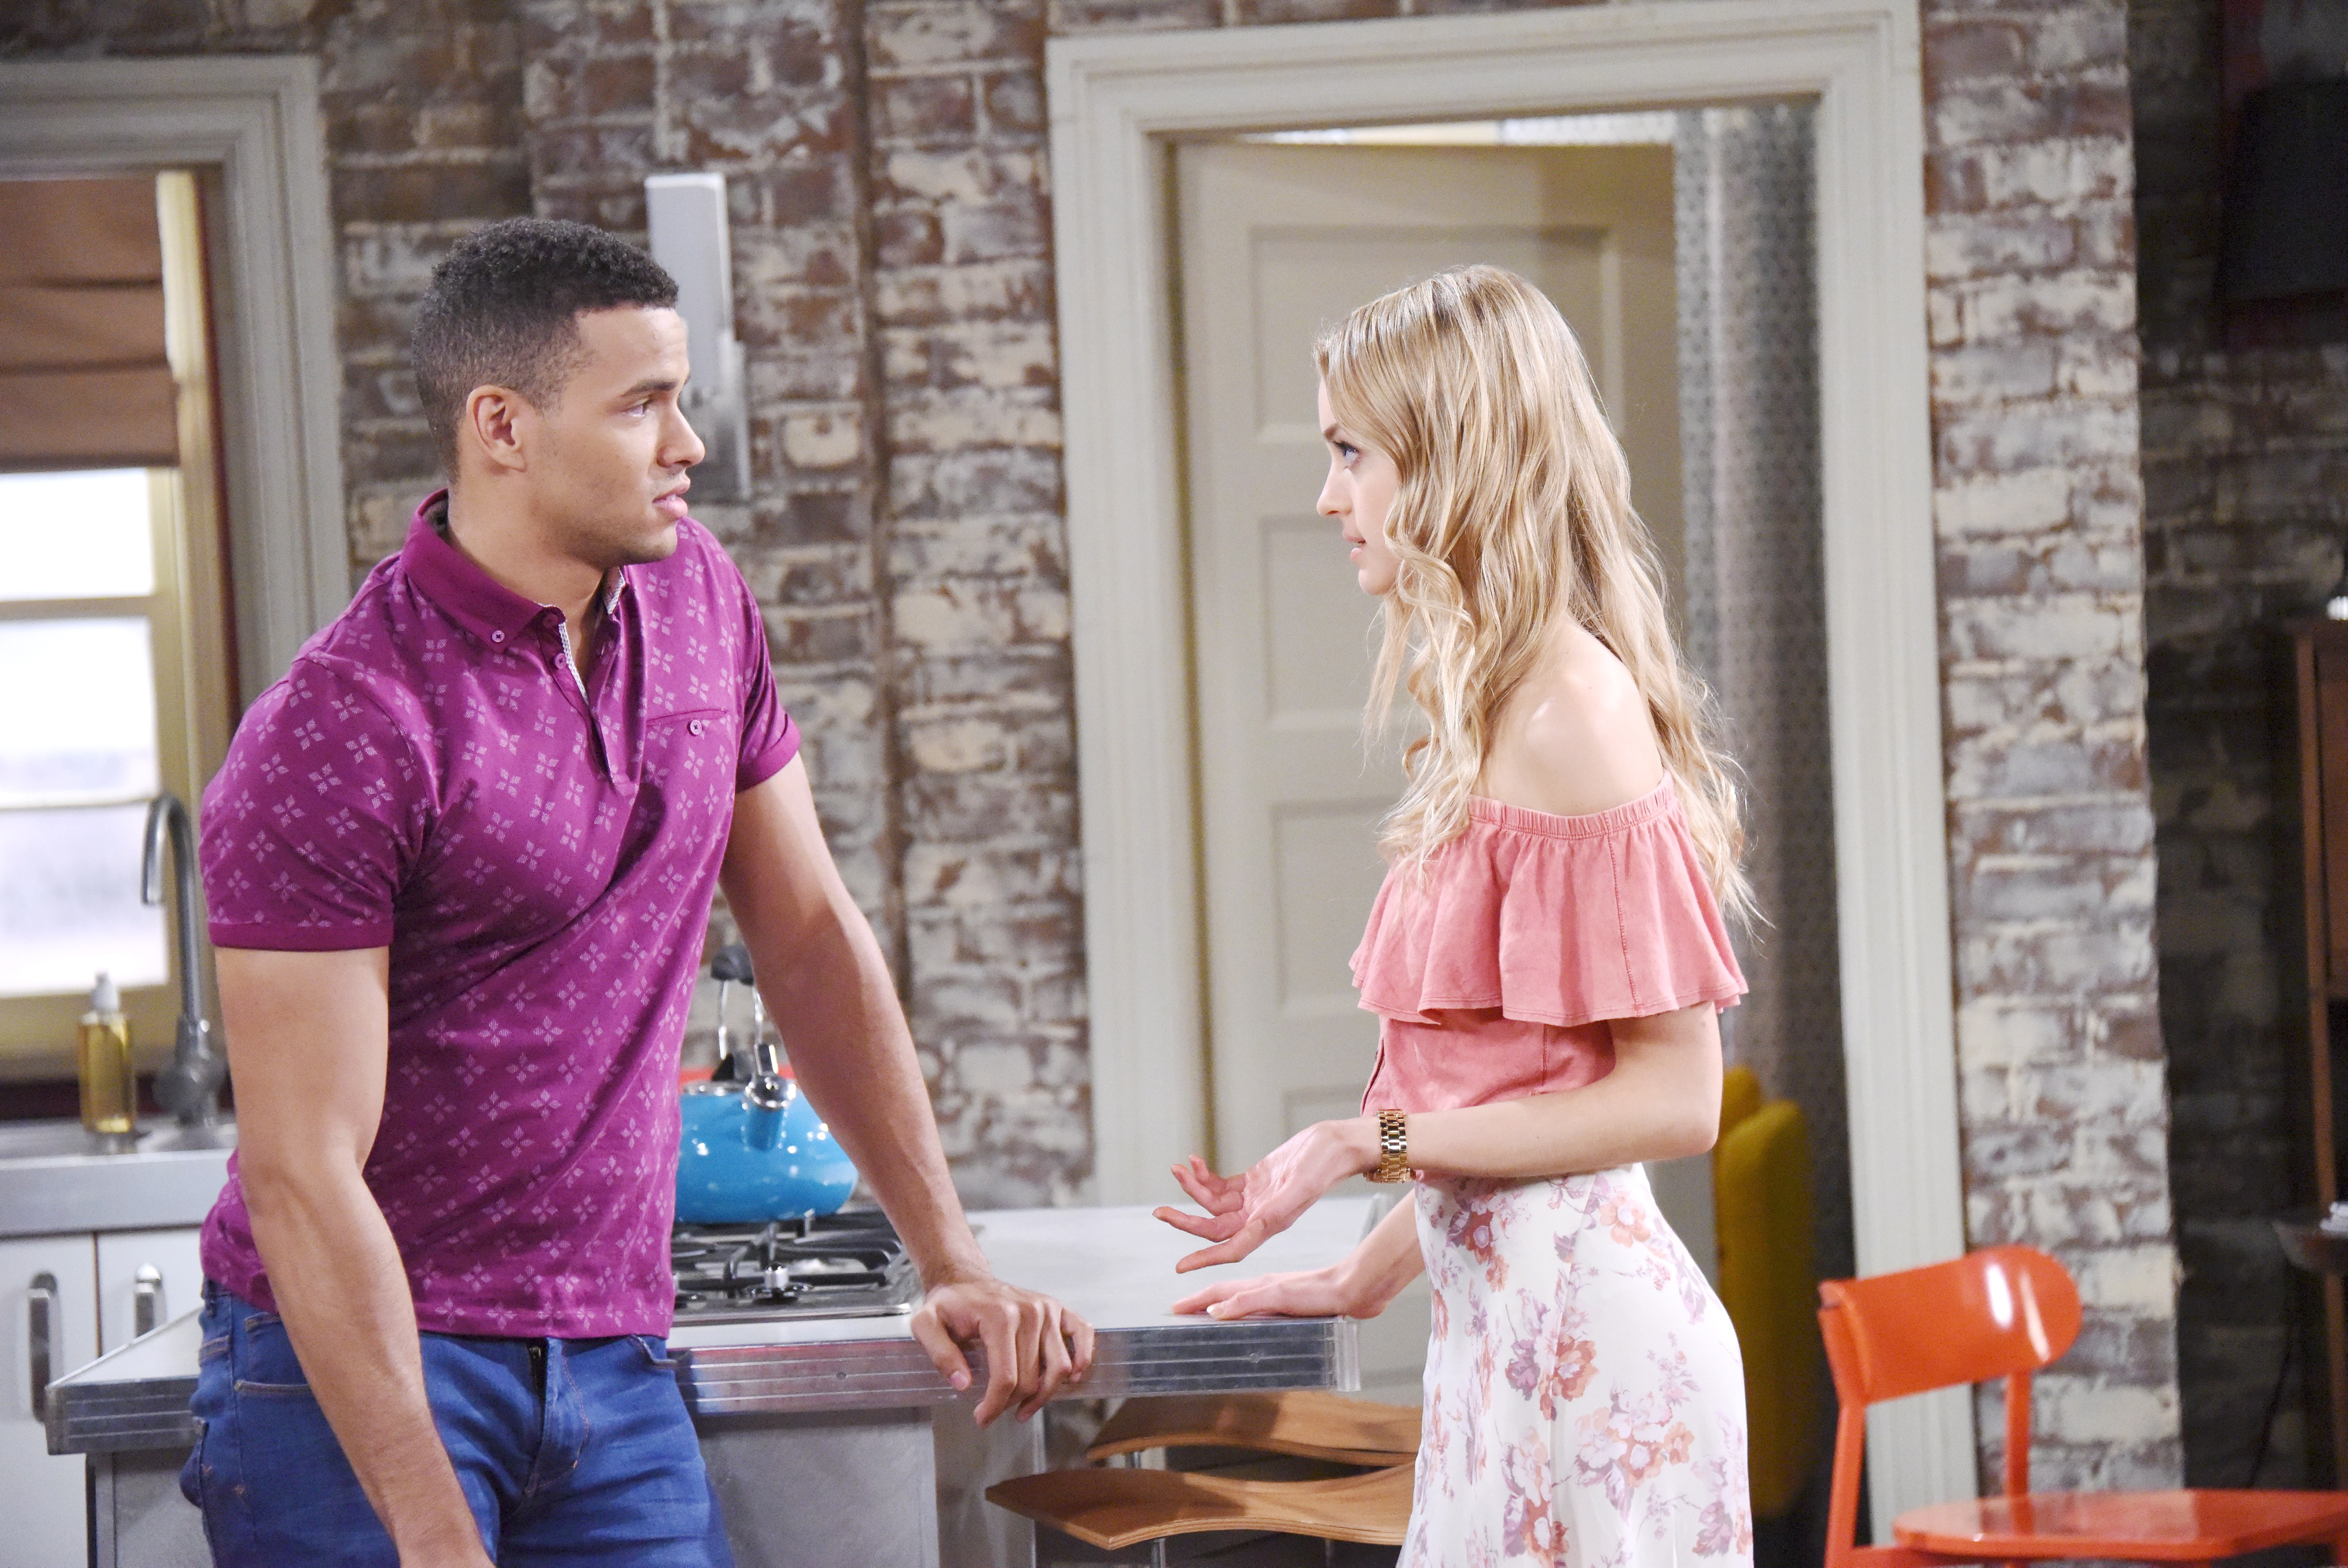 DOOL Spoilers- Theo is jealous when he learns Claire and Tripp will be working together.